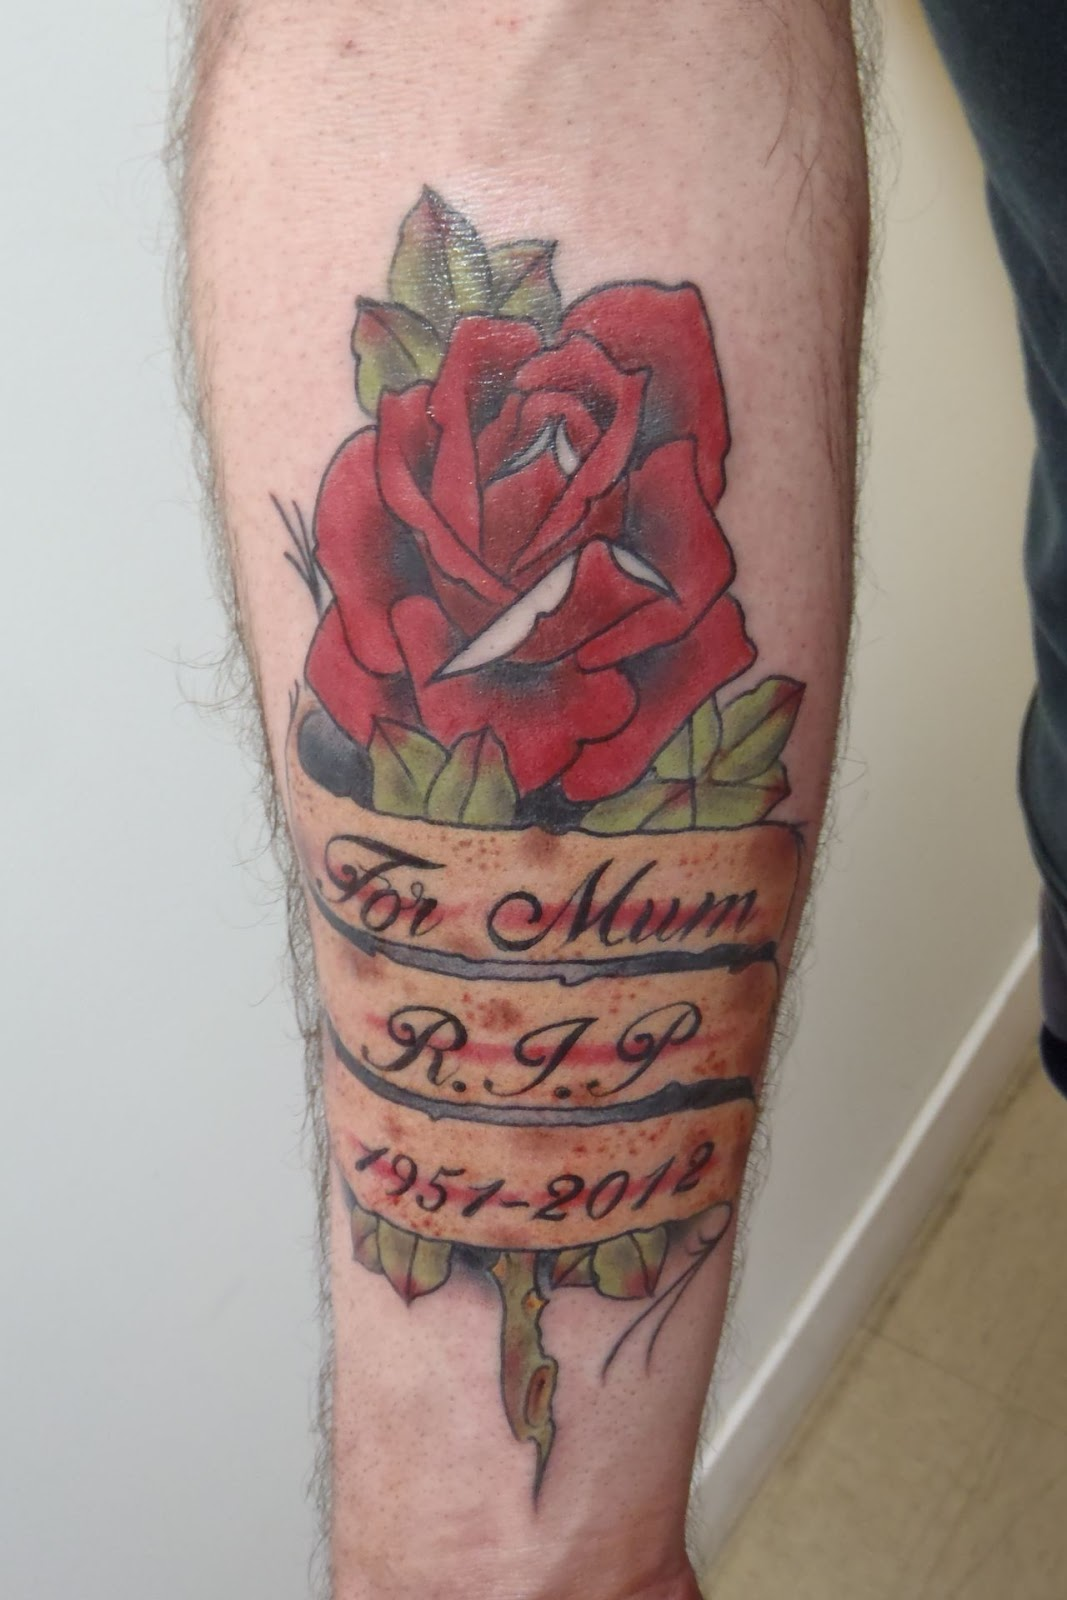 Mick's Tribute Rose. Tattoo by Rochey